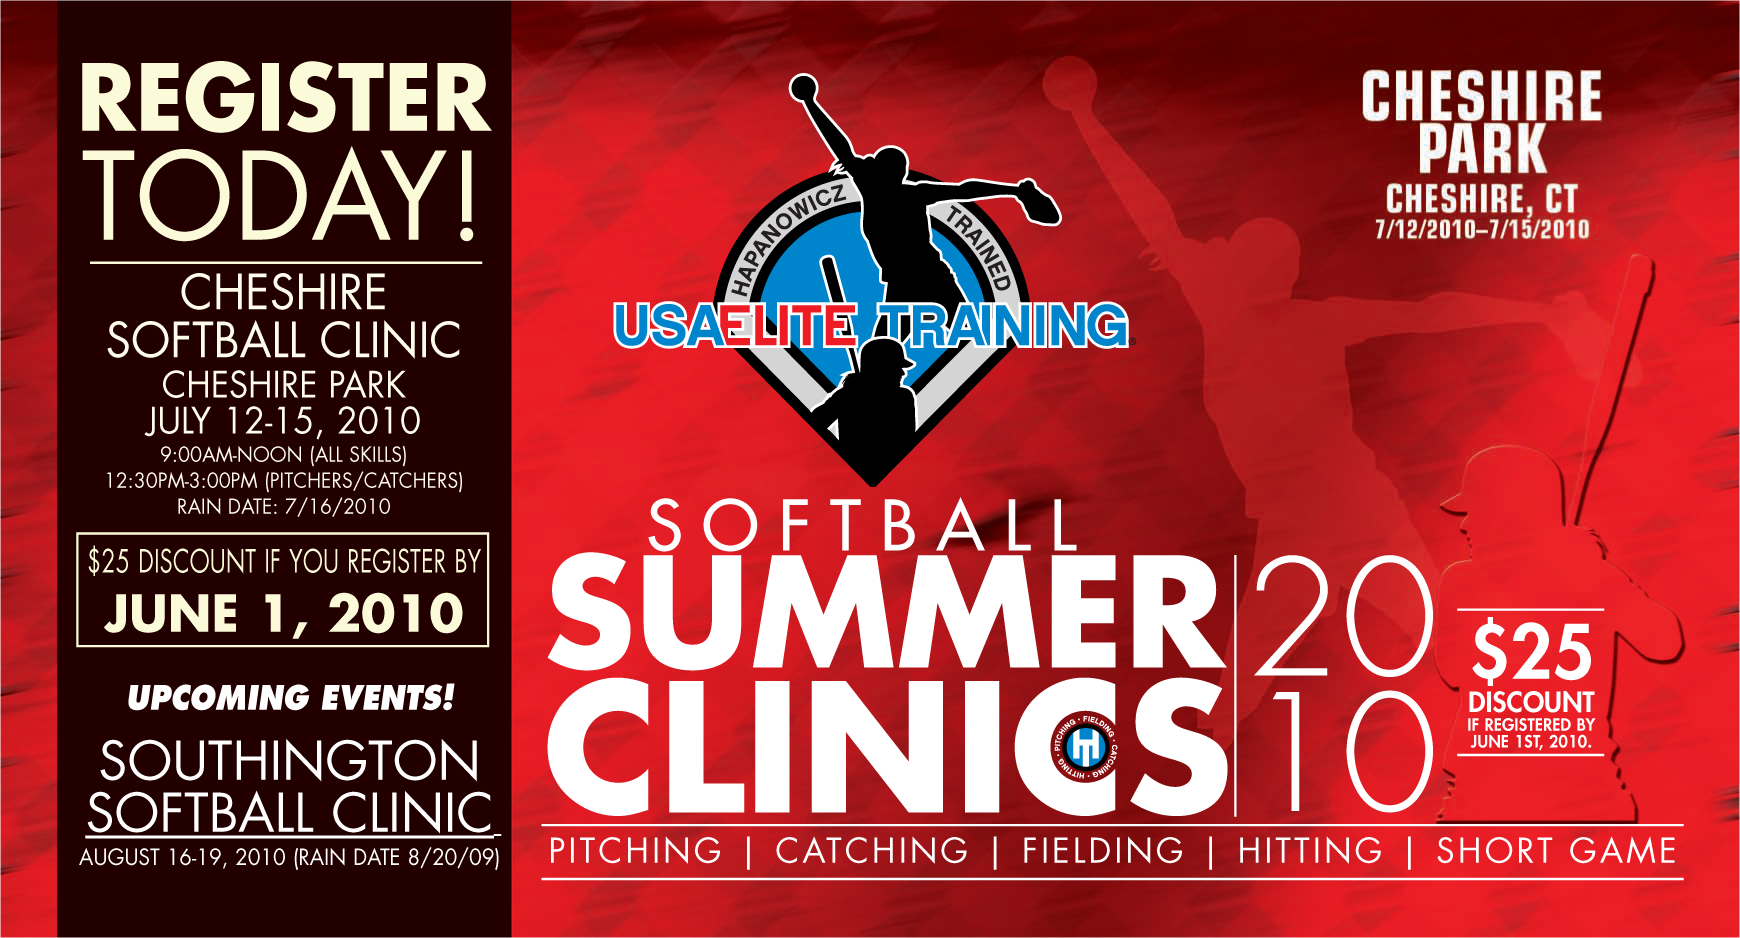 Summer Softball Clinics